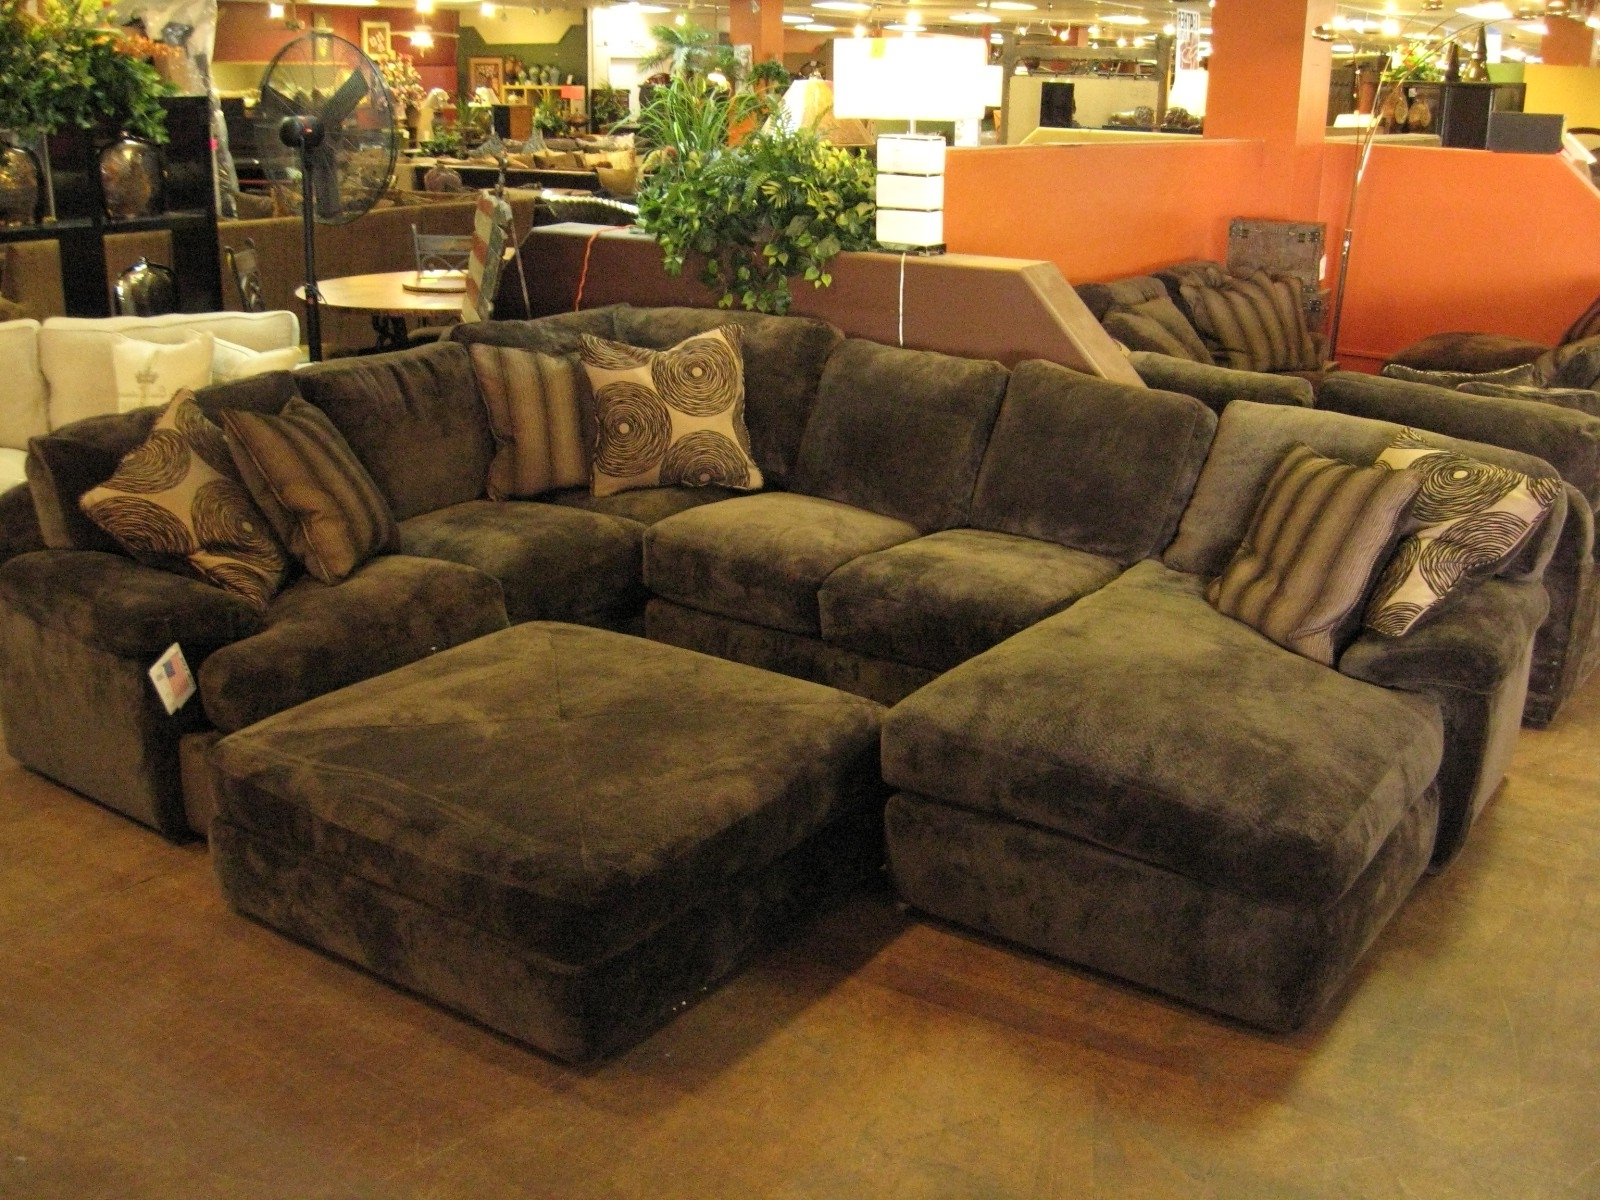 Red Fabric Sectional Sofa And Ottoman Steal A Furniture Inside In 2017 Sectionals With Ottoman And Chaise (View 5 of 15)